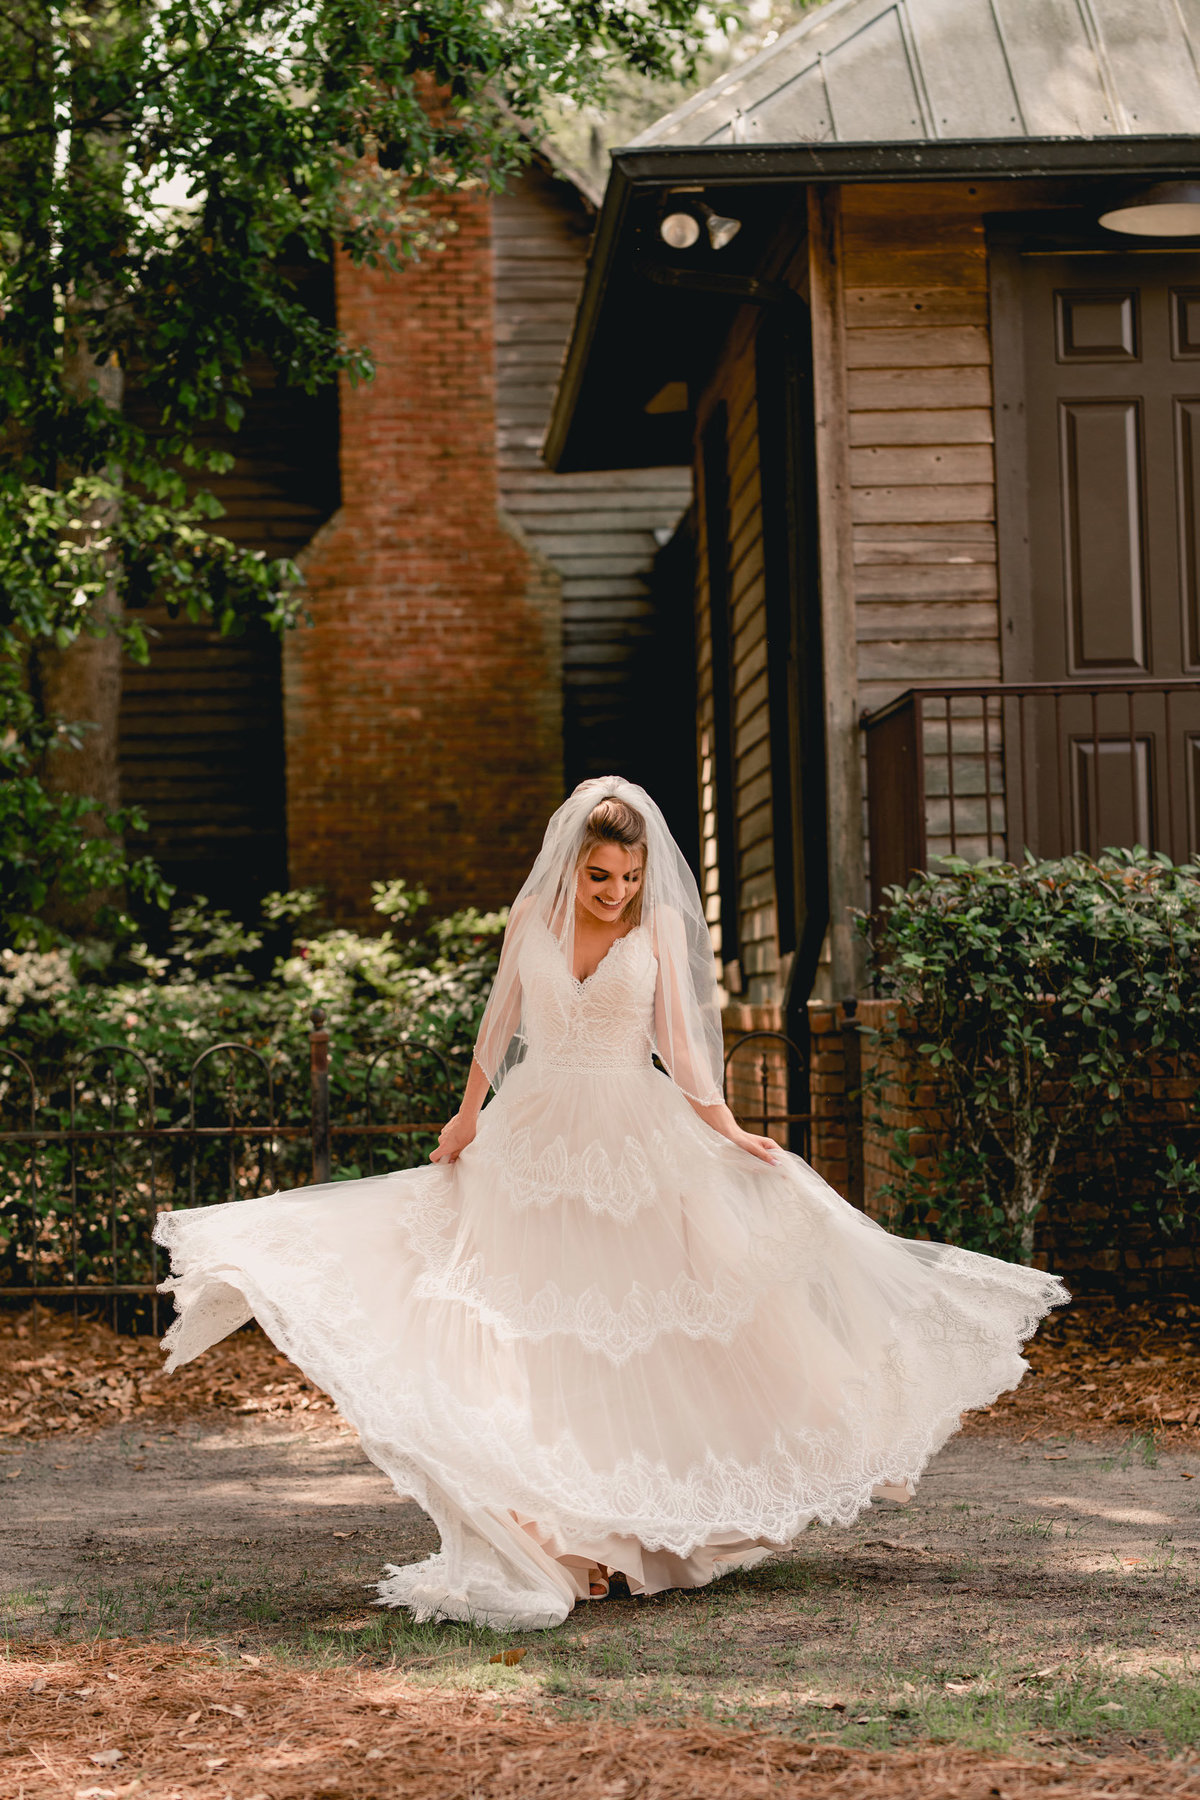 Fun lifestyle wedding photographer in Florida has bride spin in circles.